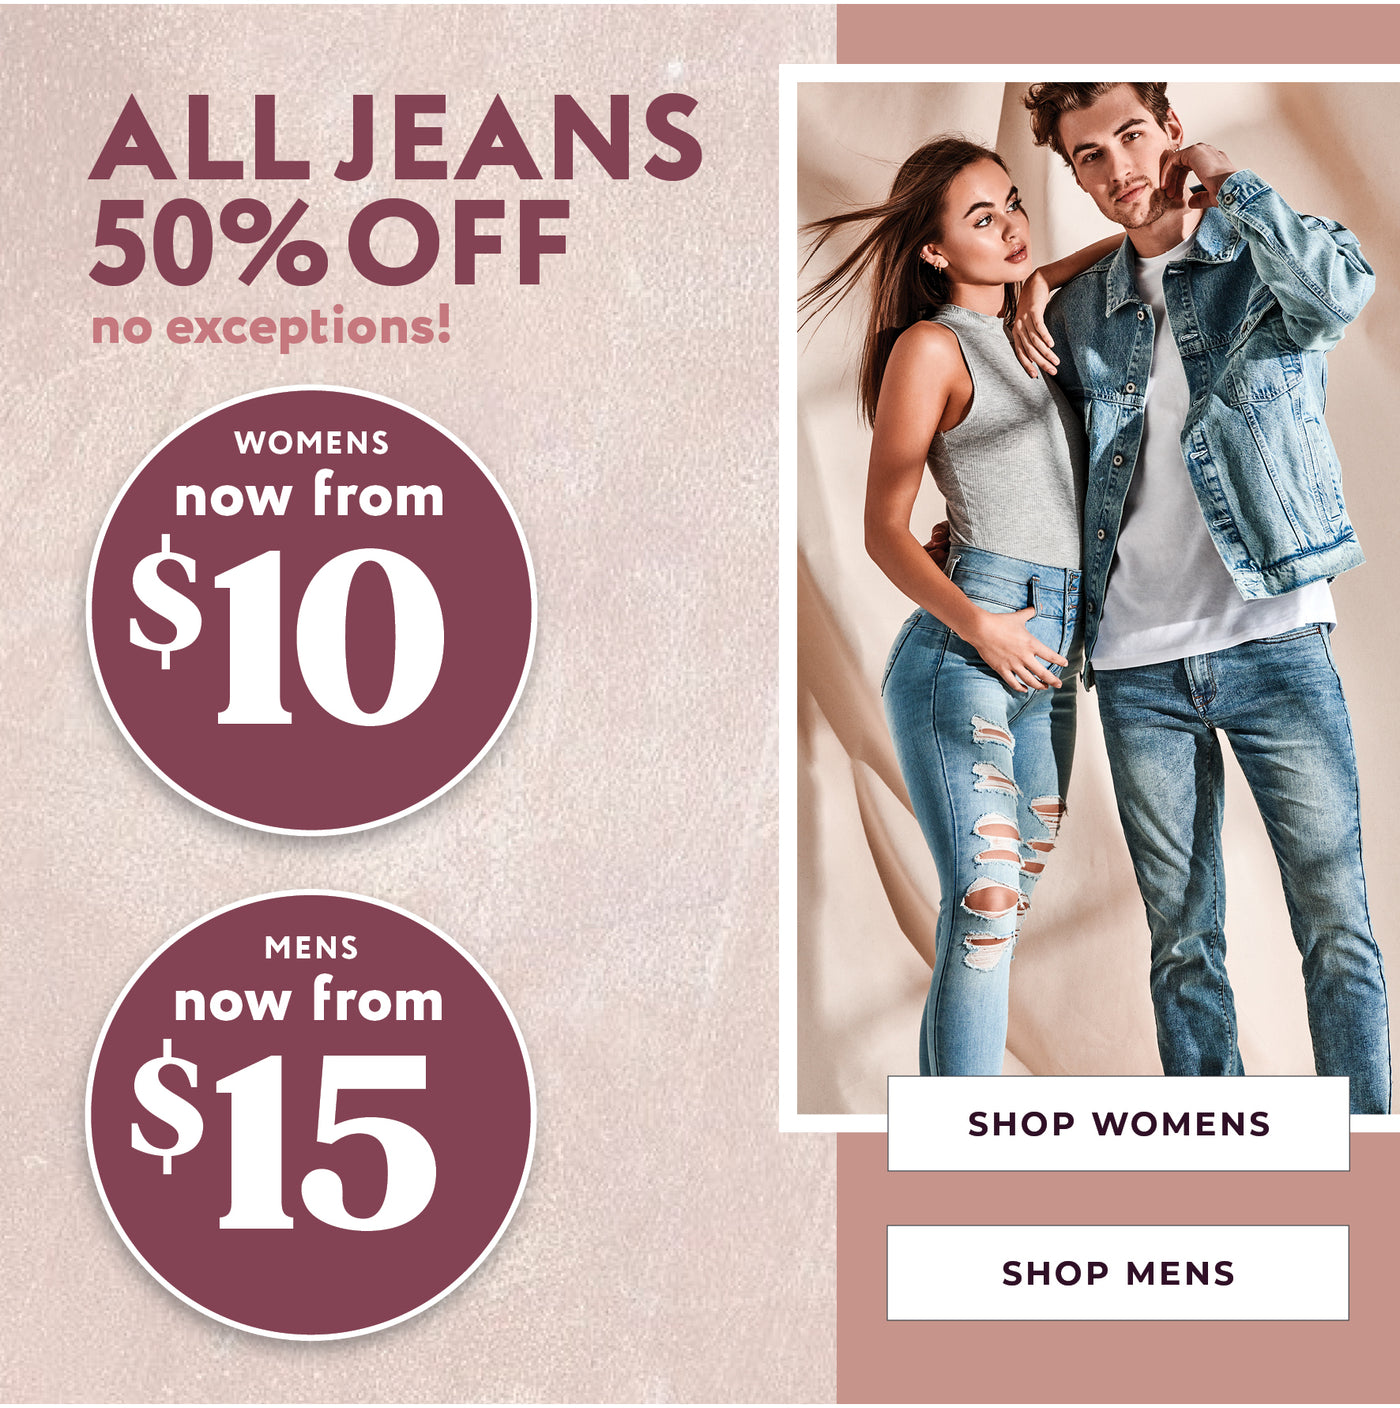 All Jeans - 50% Off - Womens now from $10, Mens now from $15